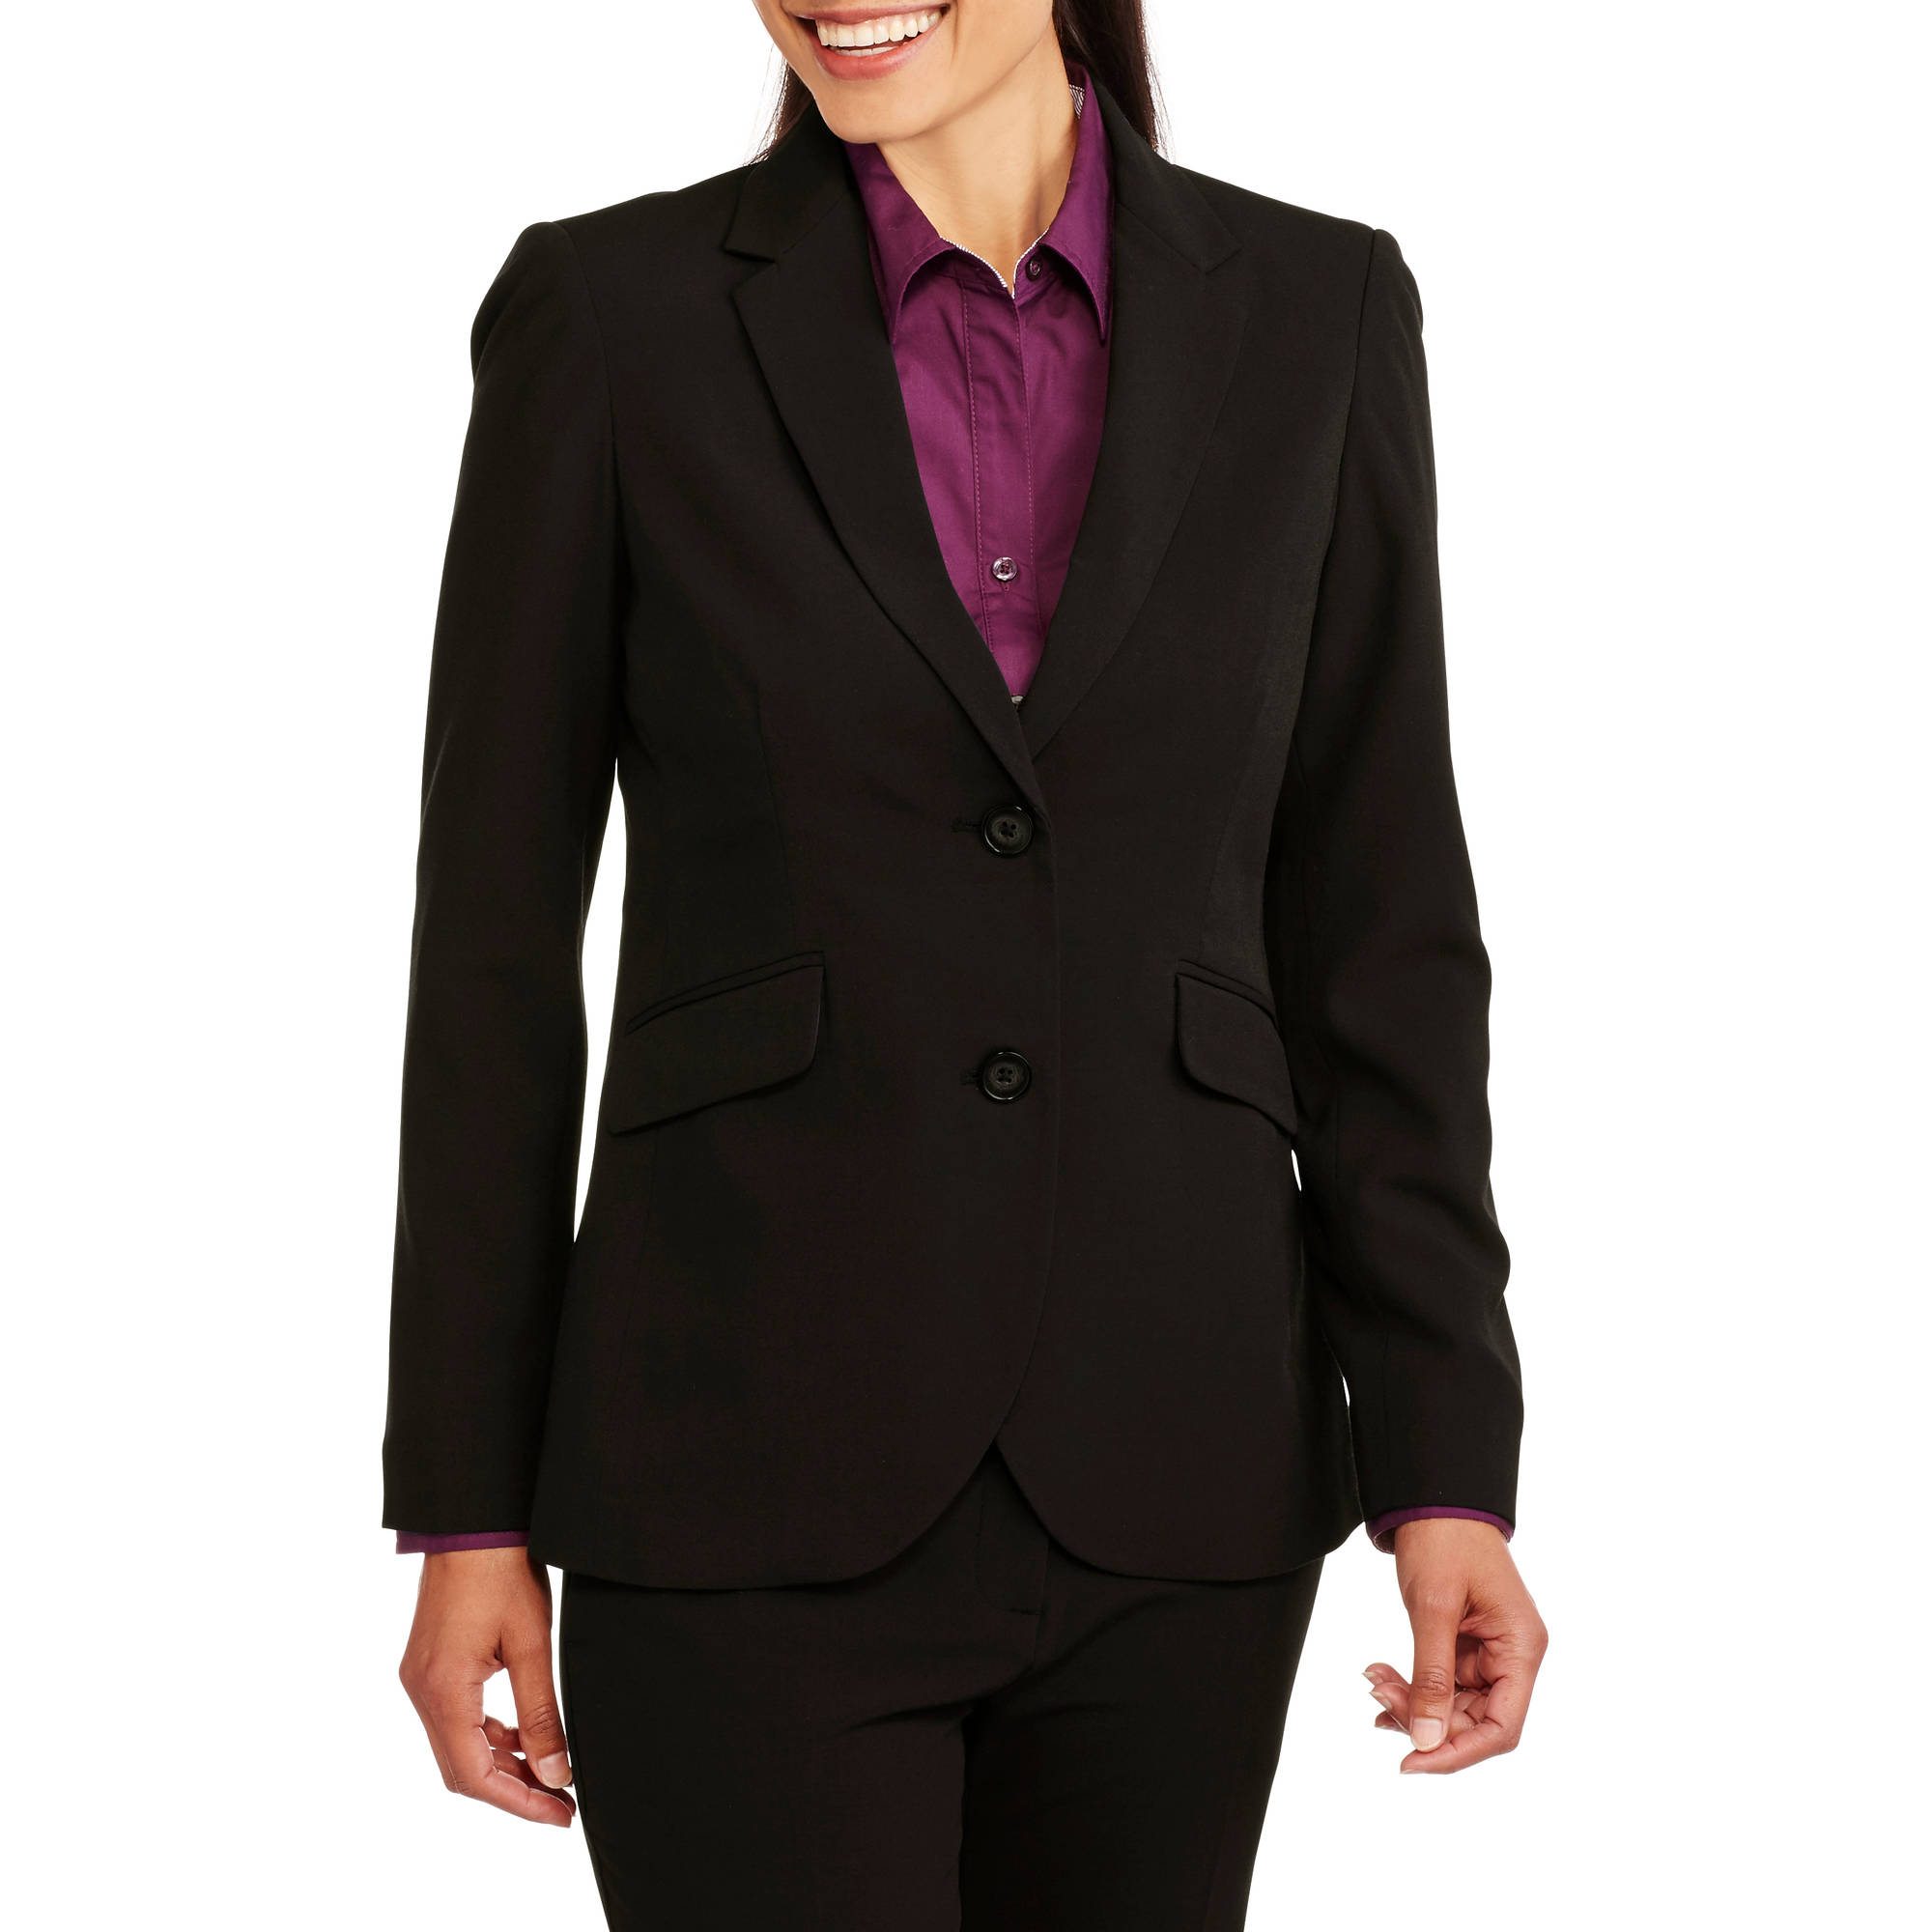 George Women S Career Suit Jacket New Updated Fit Walmart Com